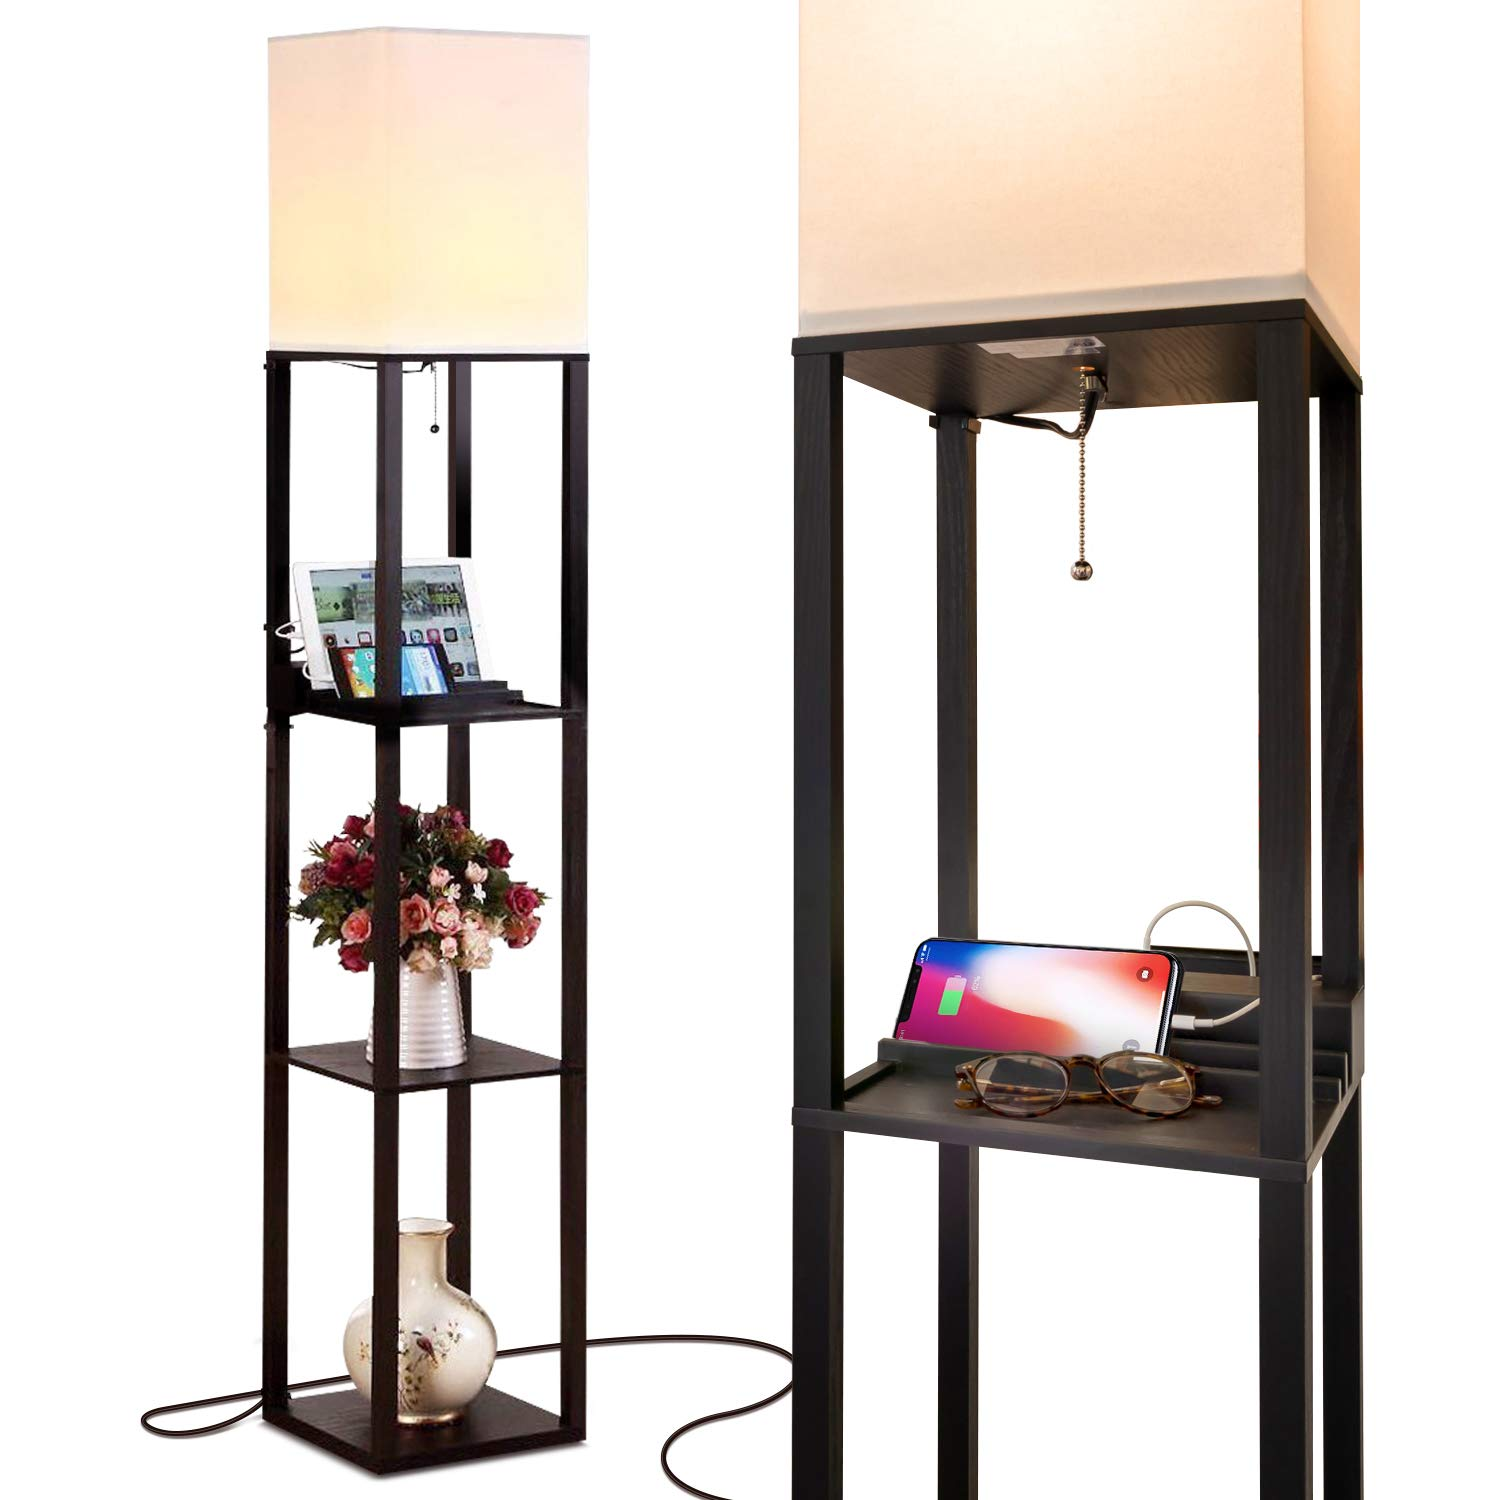 Top 10 Best Halogen Floor Lamp Reviews in 2021 2